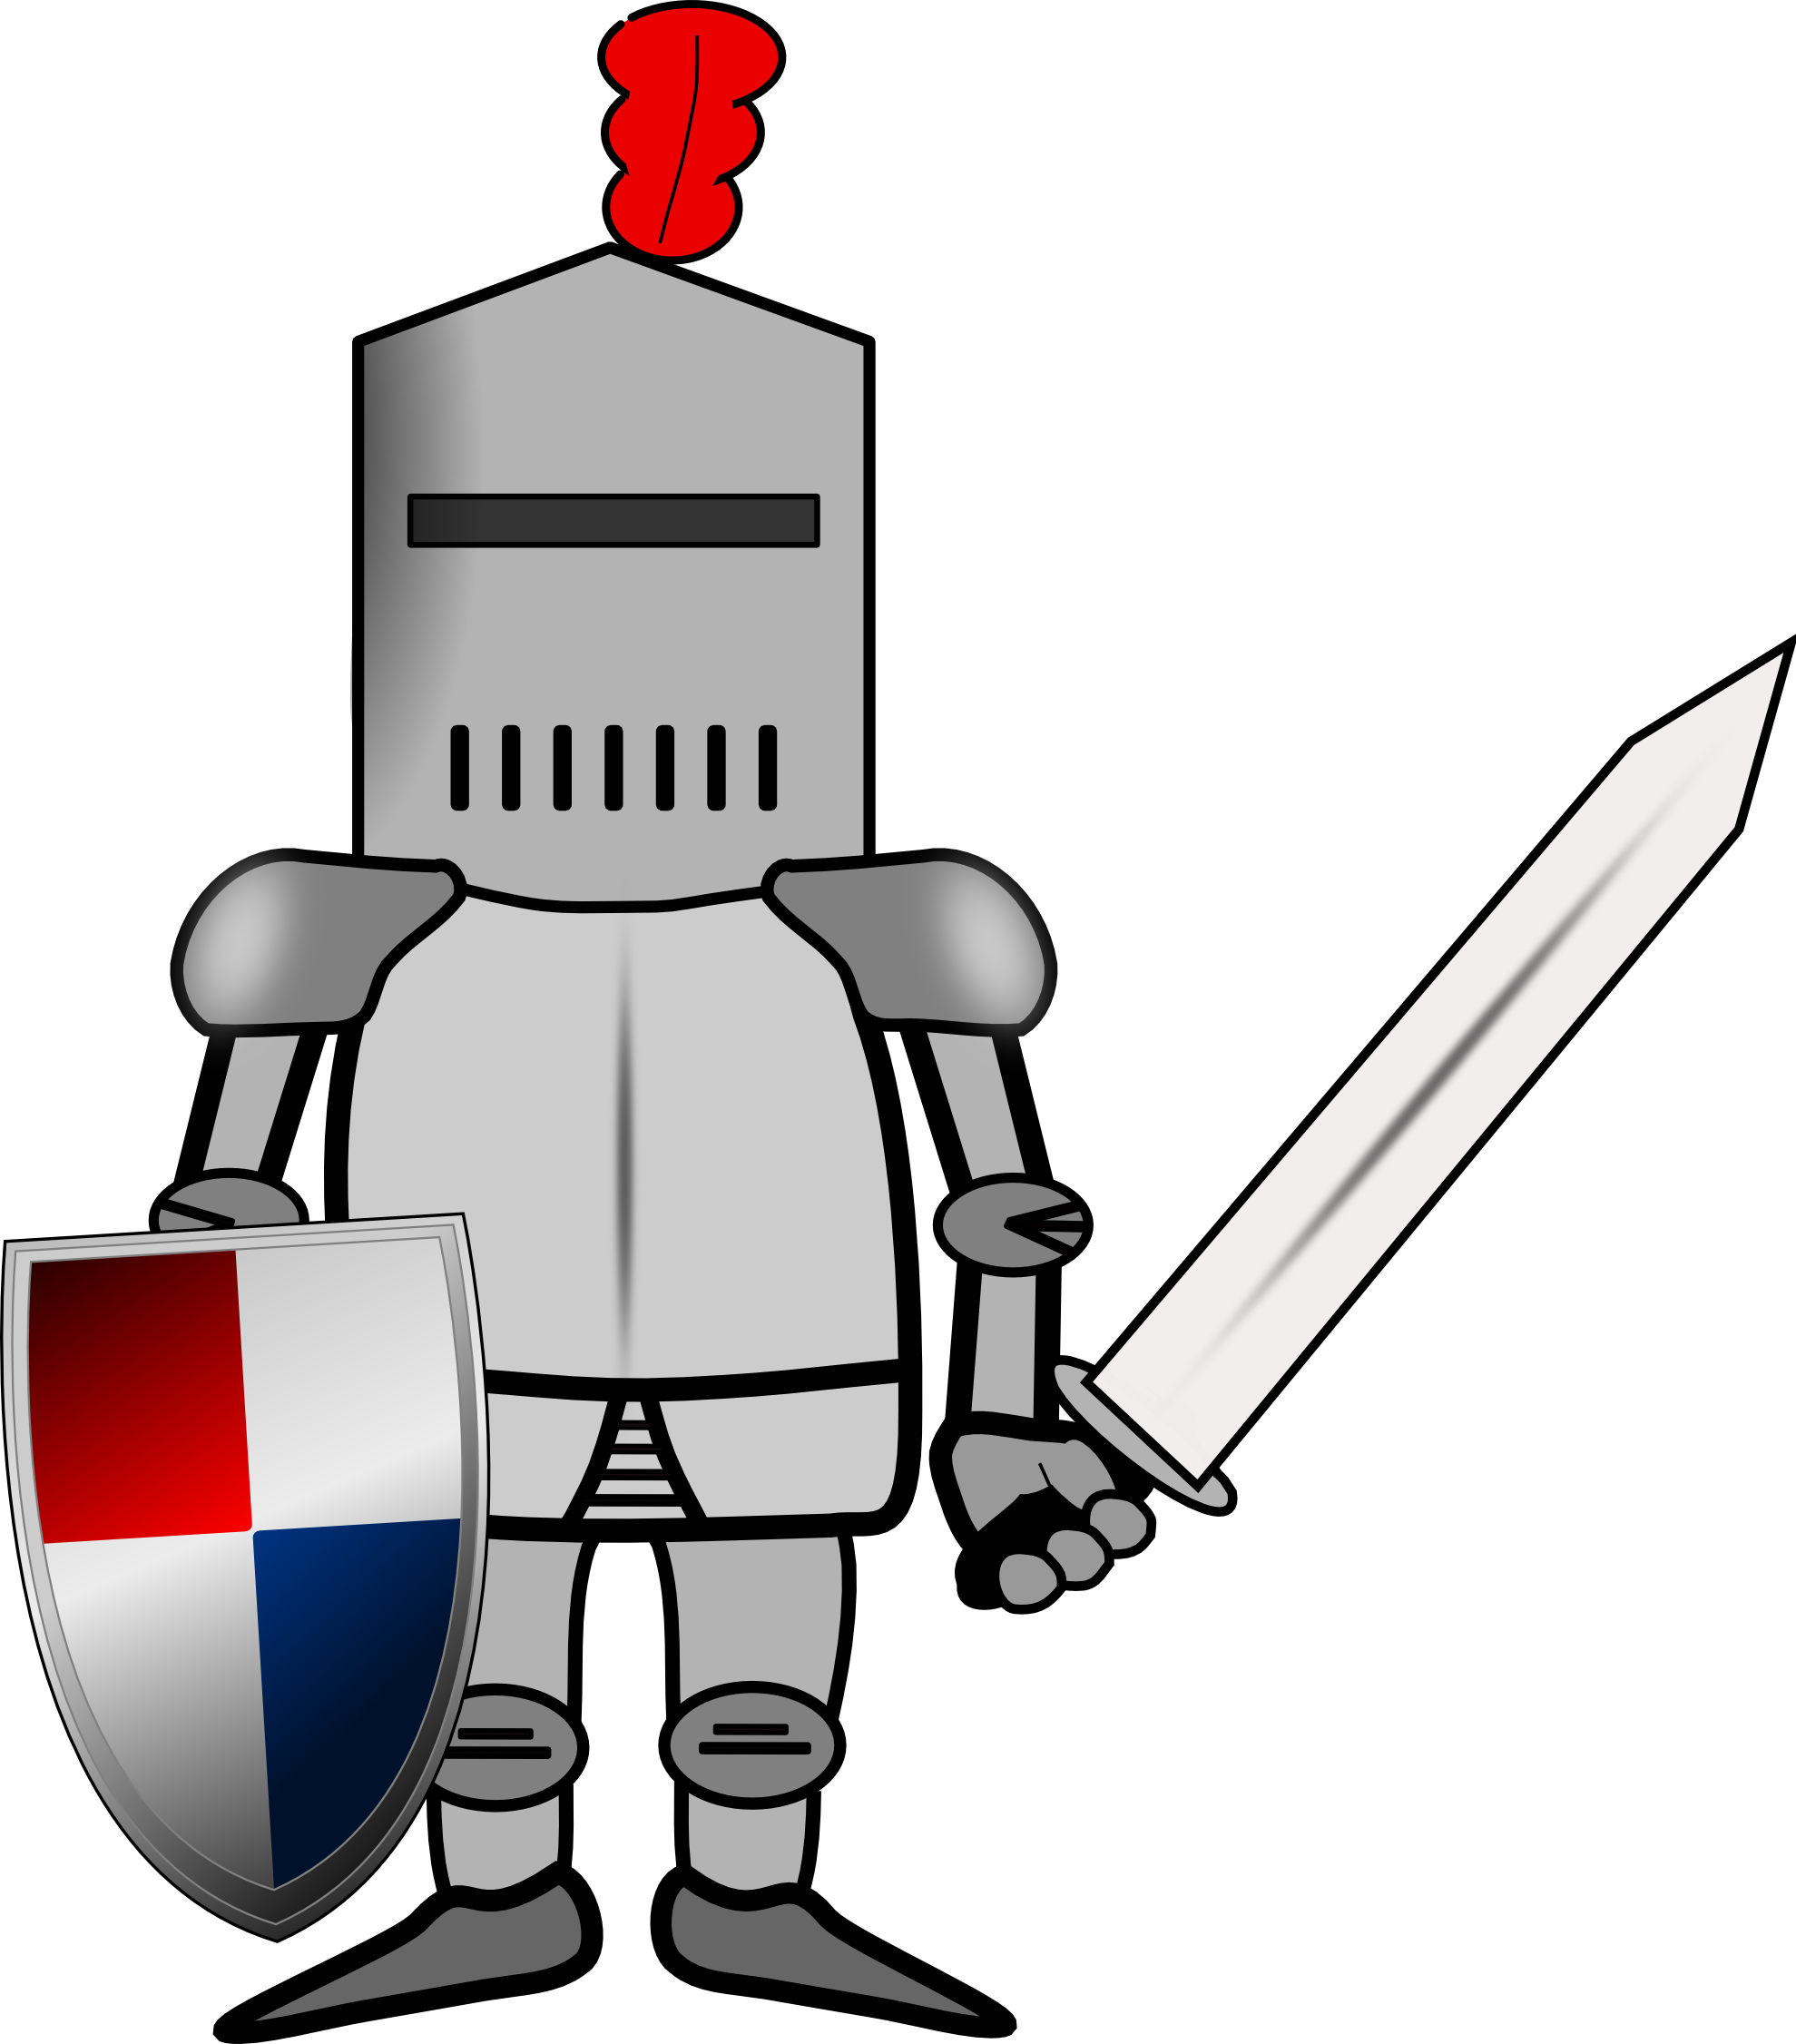 Knight Clip Art In Vector Or Eps Format Free | Clipart ...